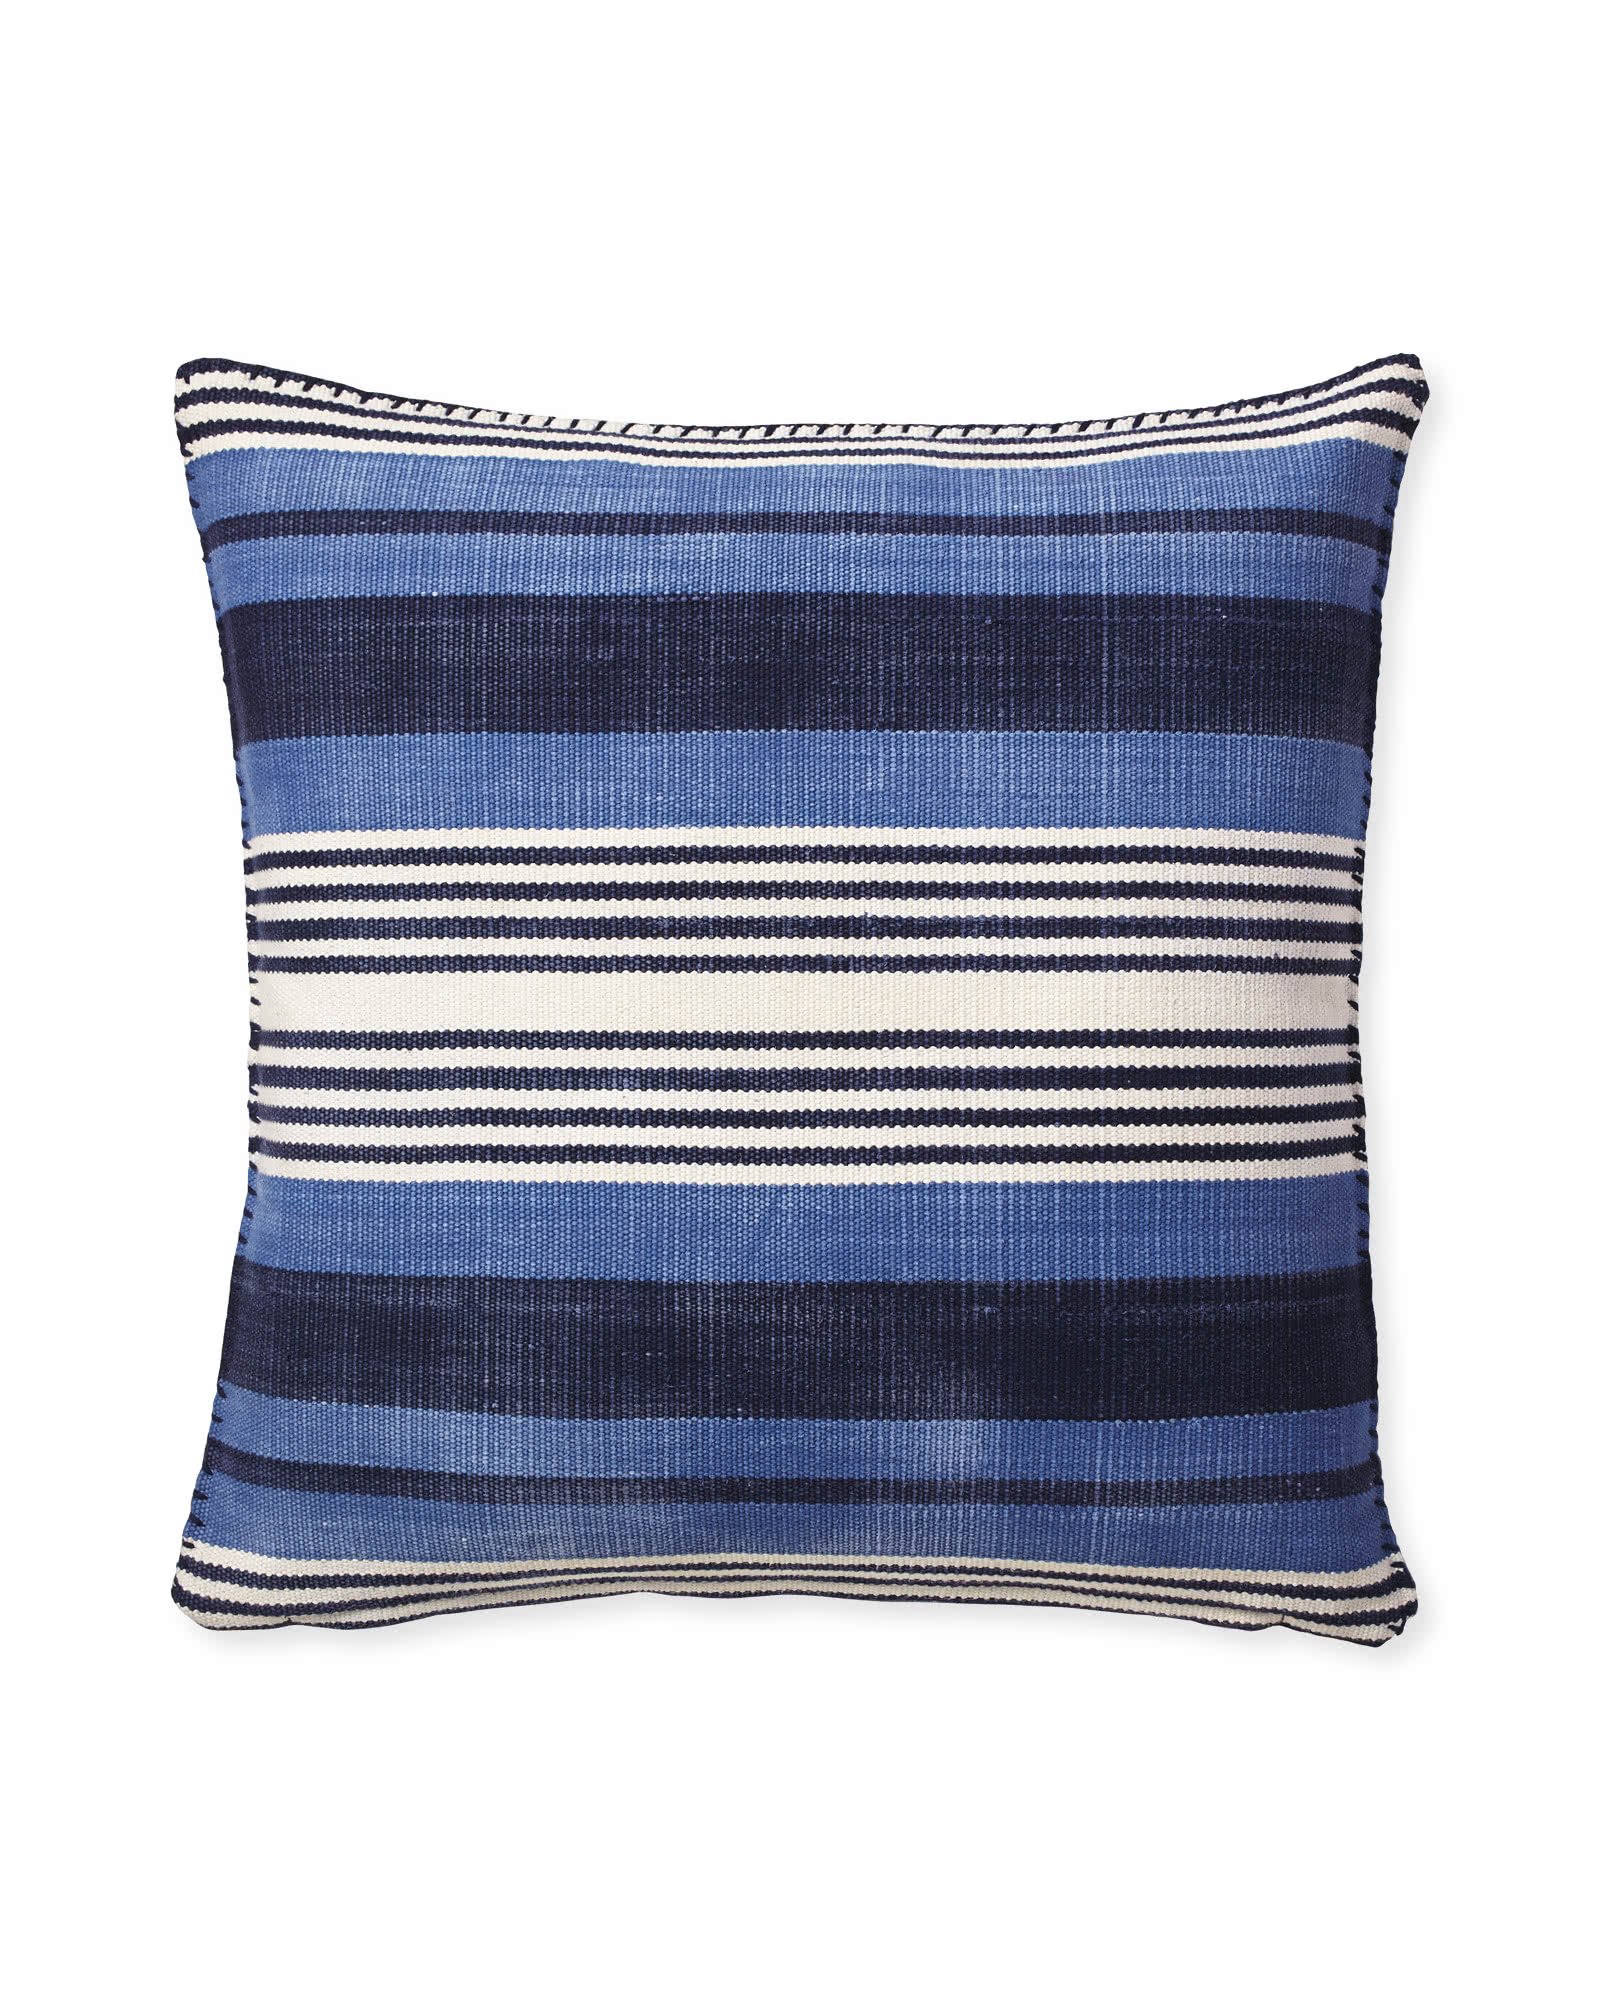 Boothbay Pillow Cover,